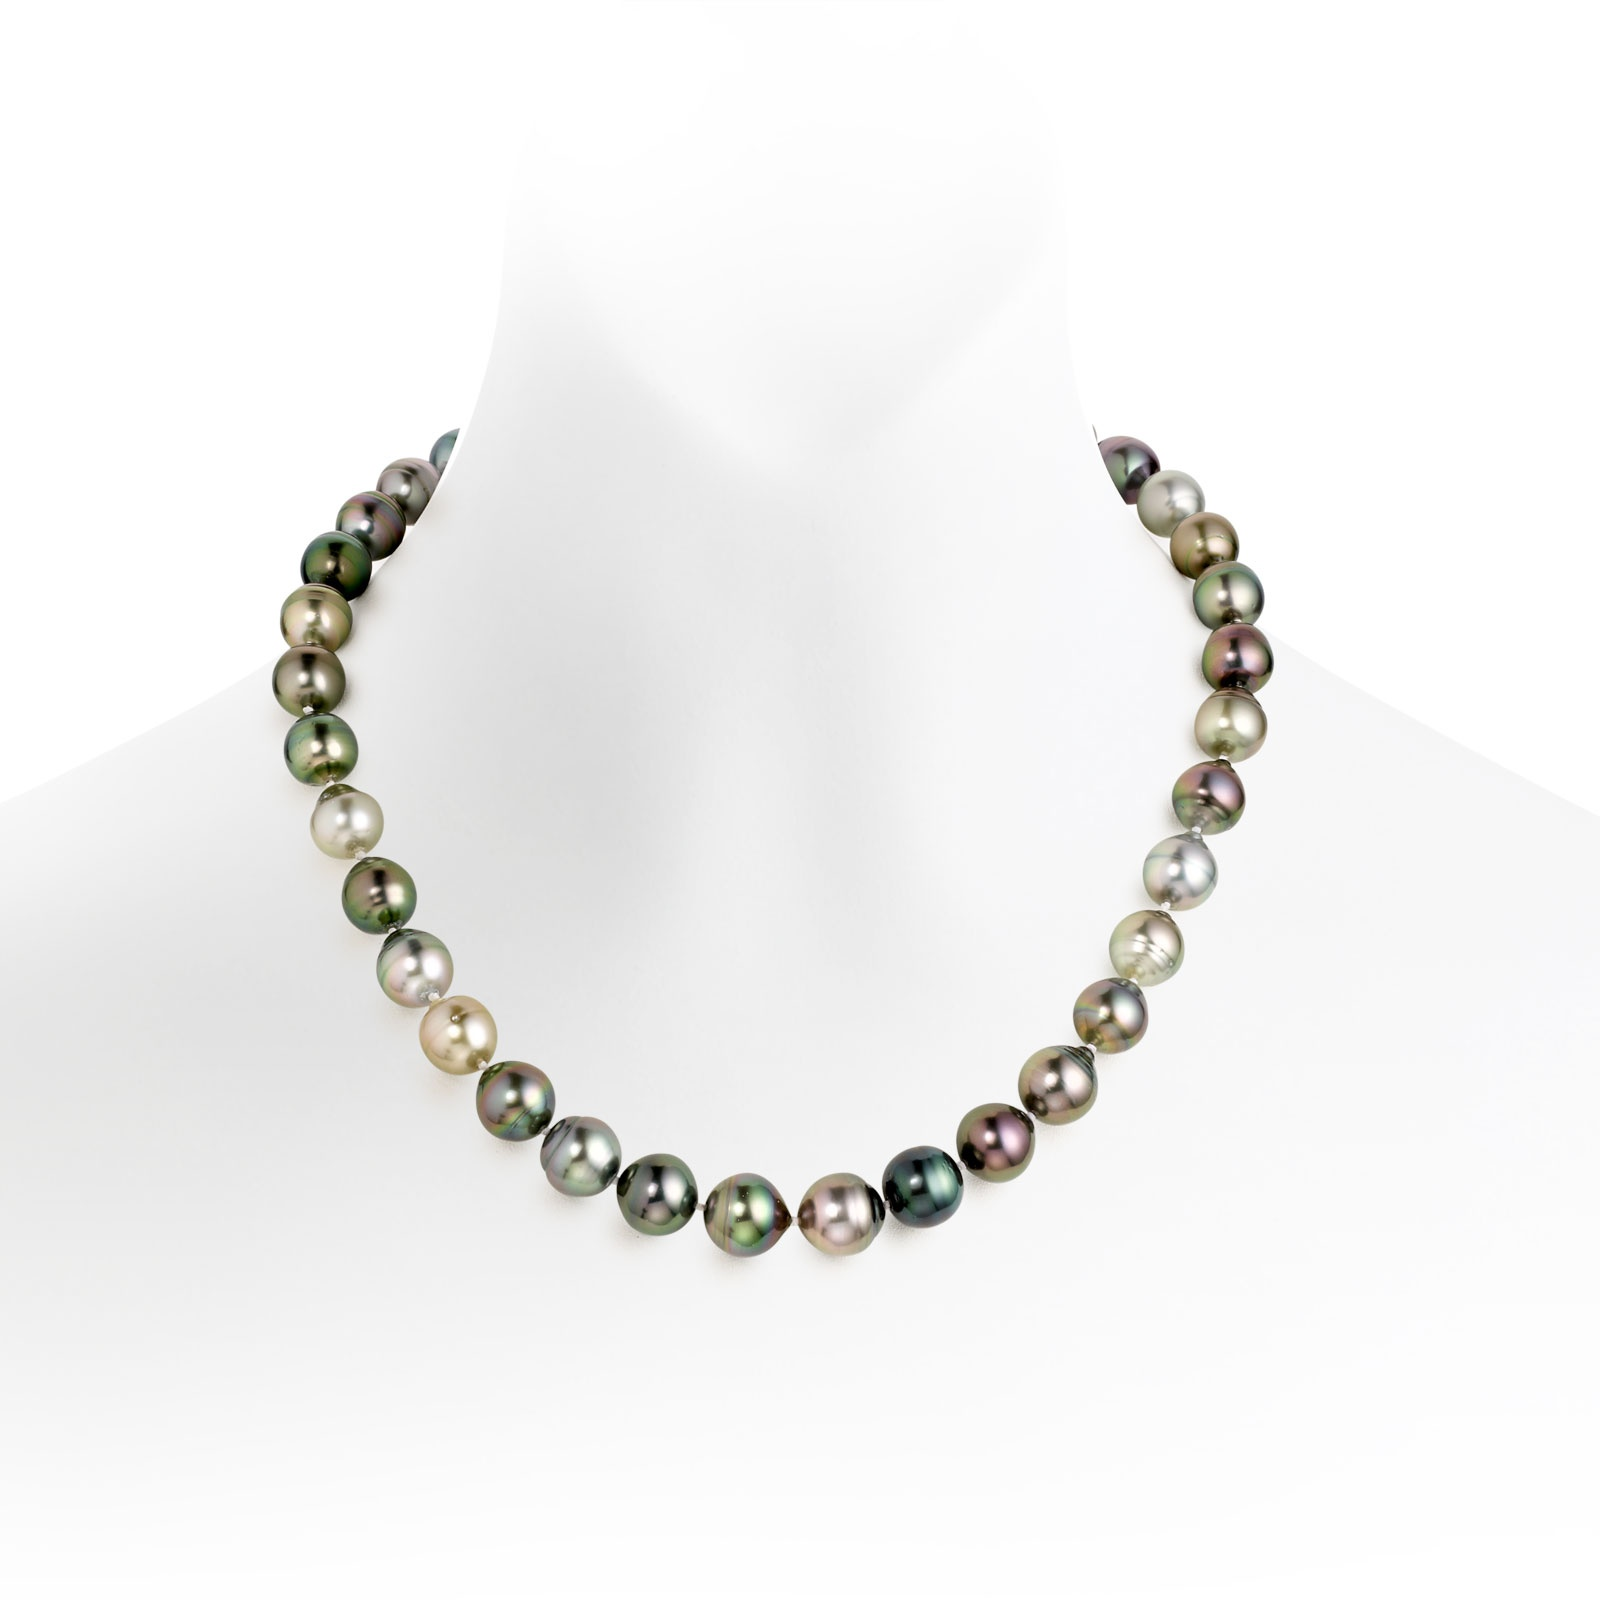 Multi-coloured Baroque Tahitian Pearl Necklace with 18ct White Gold-TNMBWG0017-1